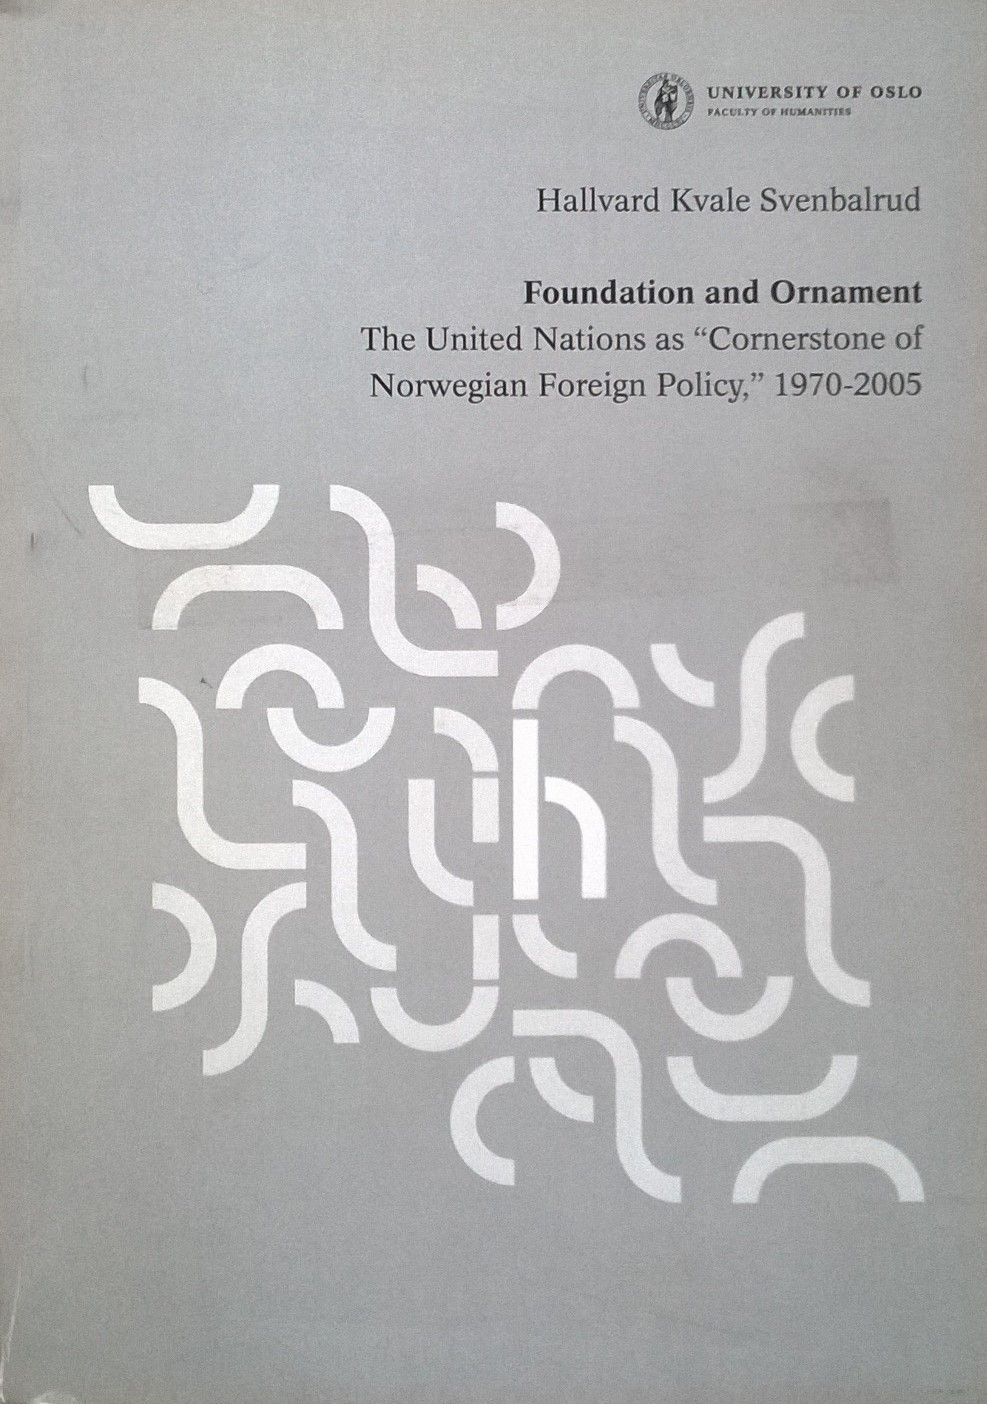 Svenbalrud, Hallvard Kvale Foundation and Ornament: The United Nations as 'Cornerstone' of Norwegian Foreign Policy,' 1970—2005